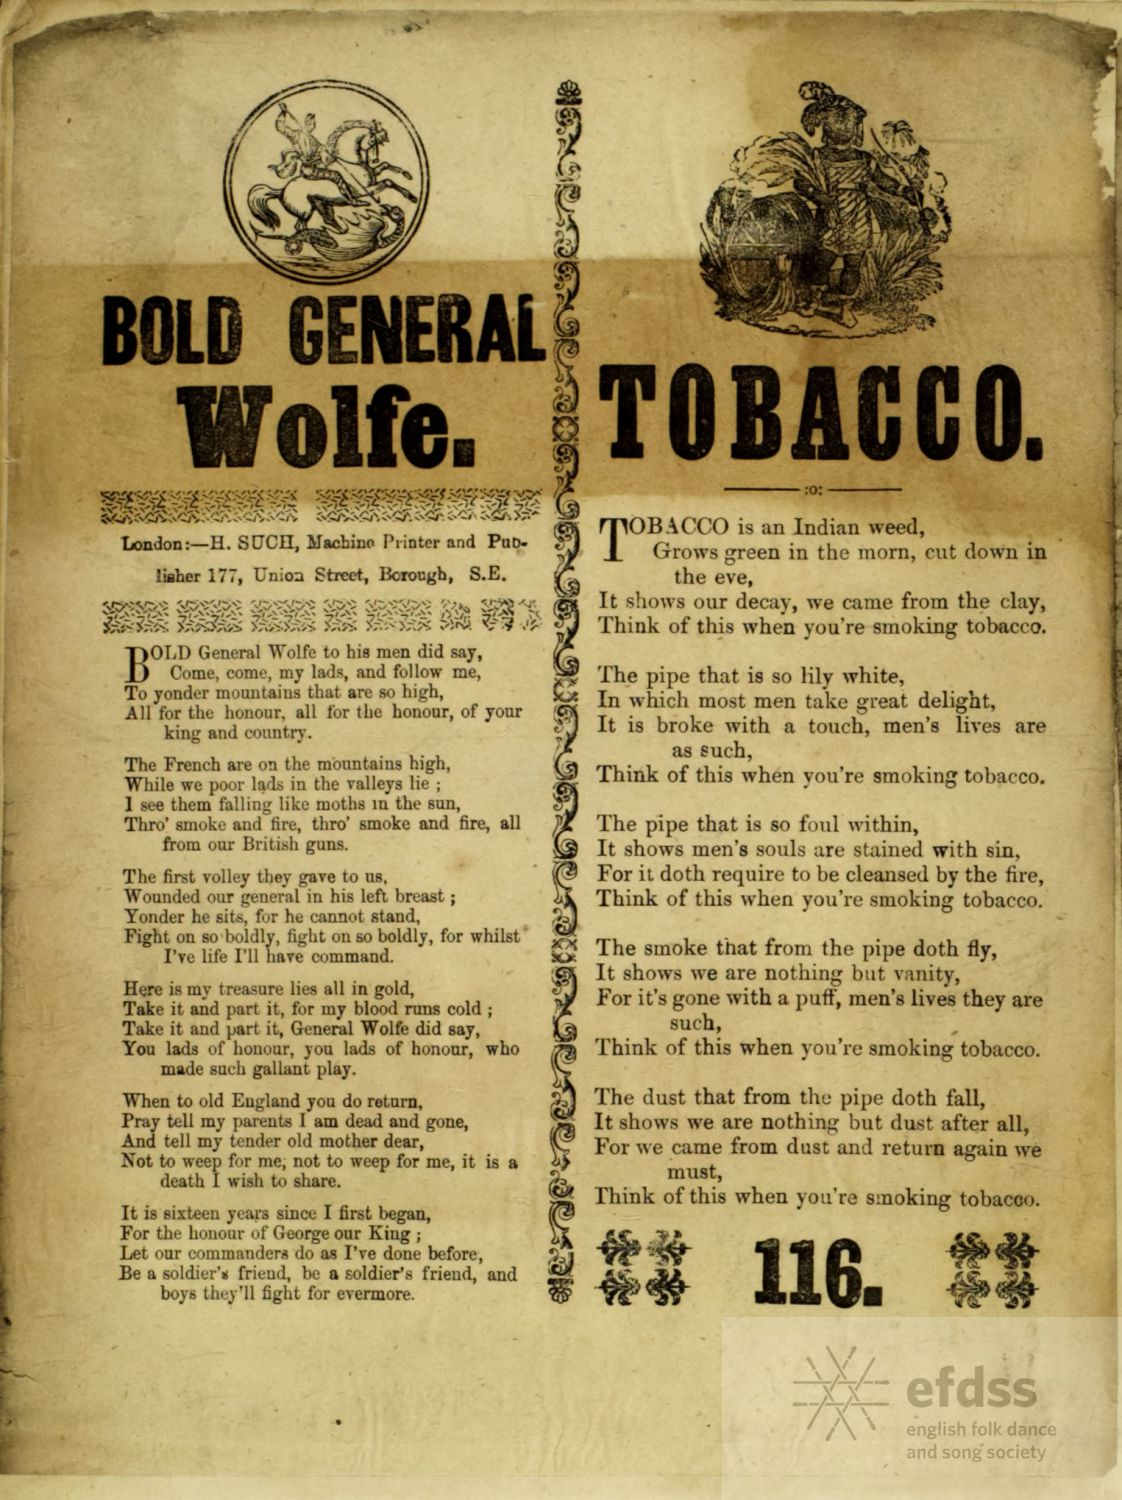 Bold General Wolfe - Such broadside from the Lucy Broadwood collection, via the VWML archive catalogue.